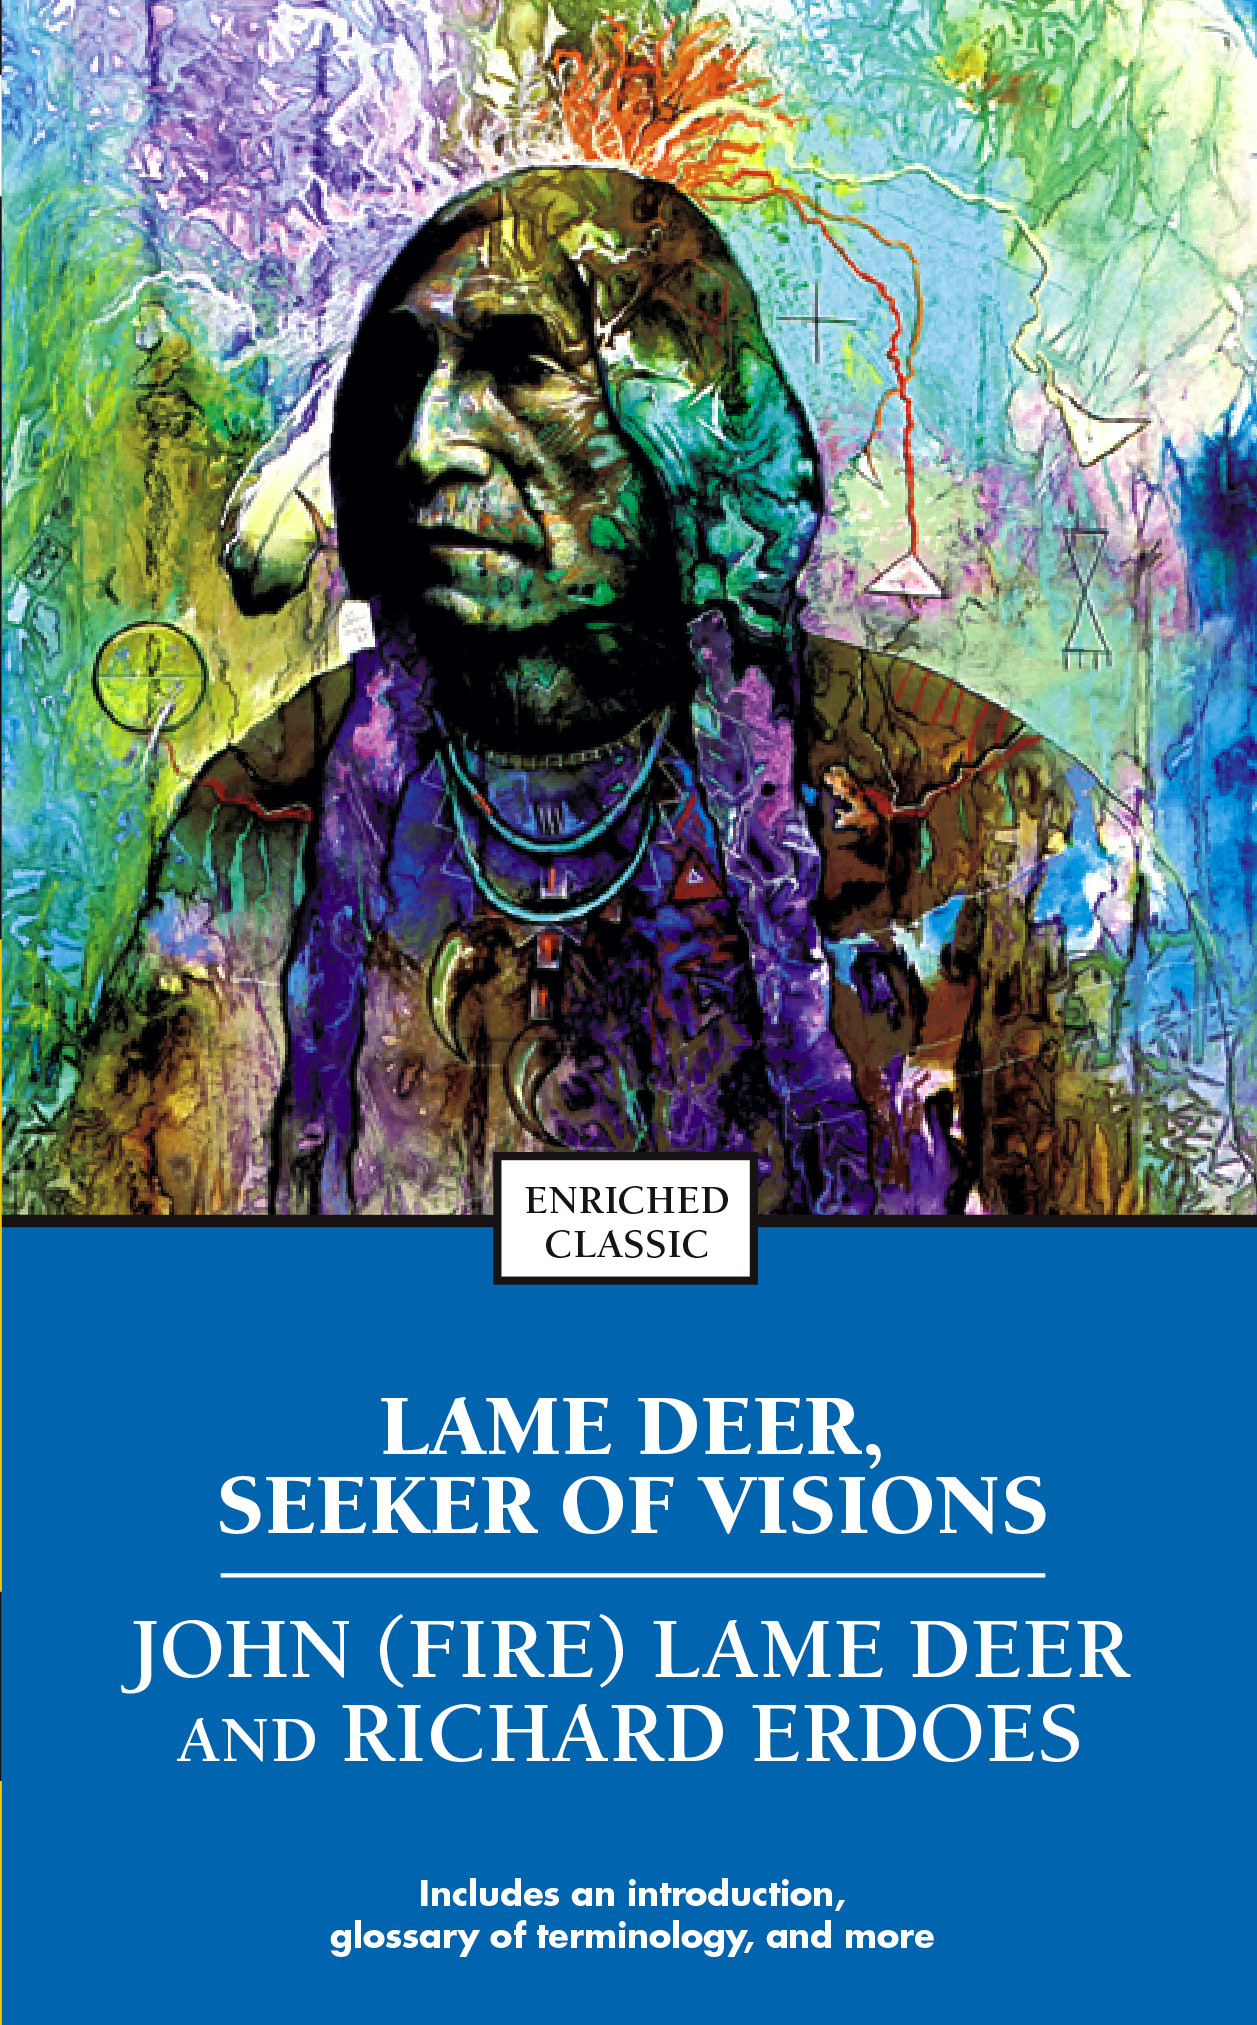 Lame Deer's book cover